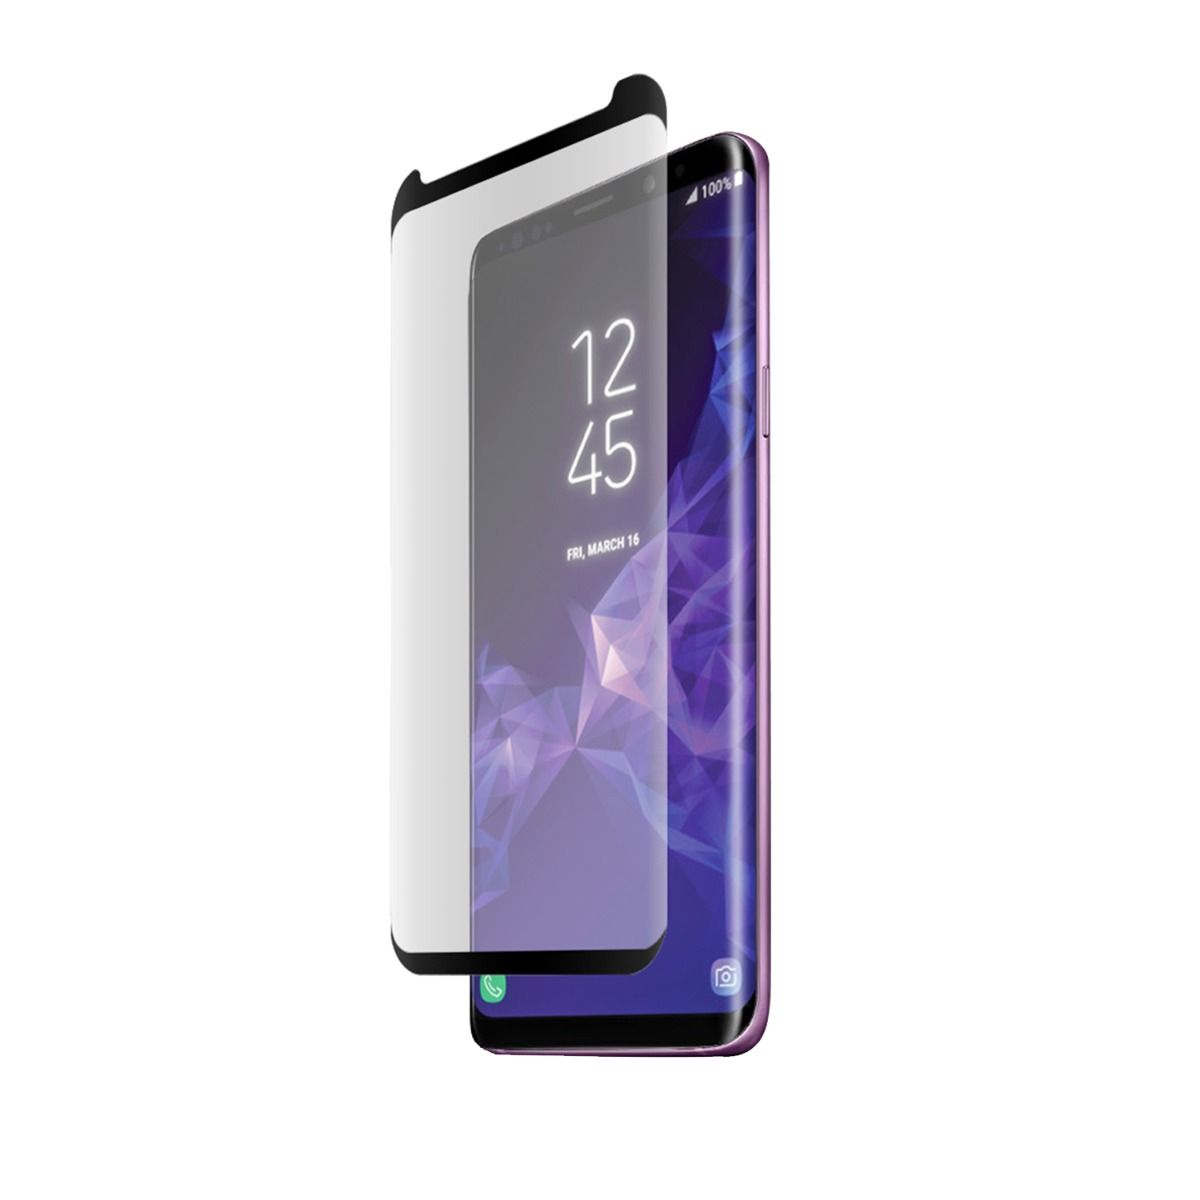 Samsung Galaxy S9 High-Definition Curved Glass Screen Protector with Top/Bottom Black Border and Alignment Tray